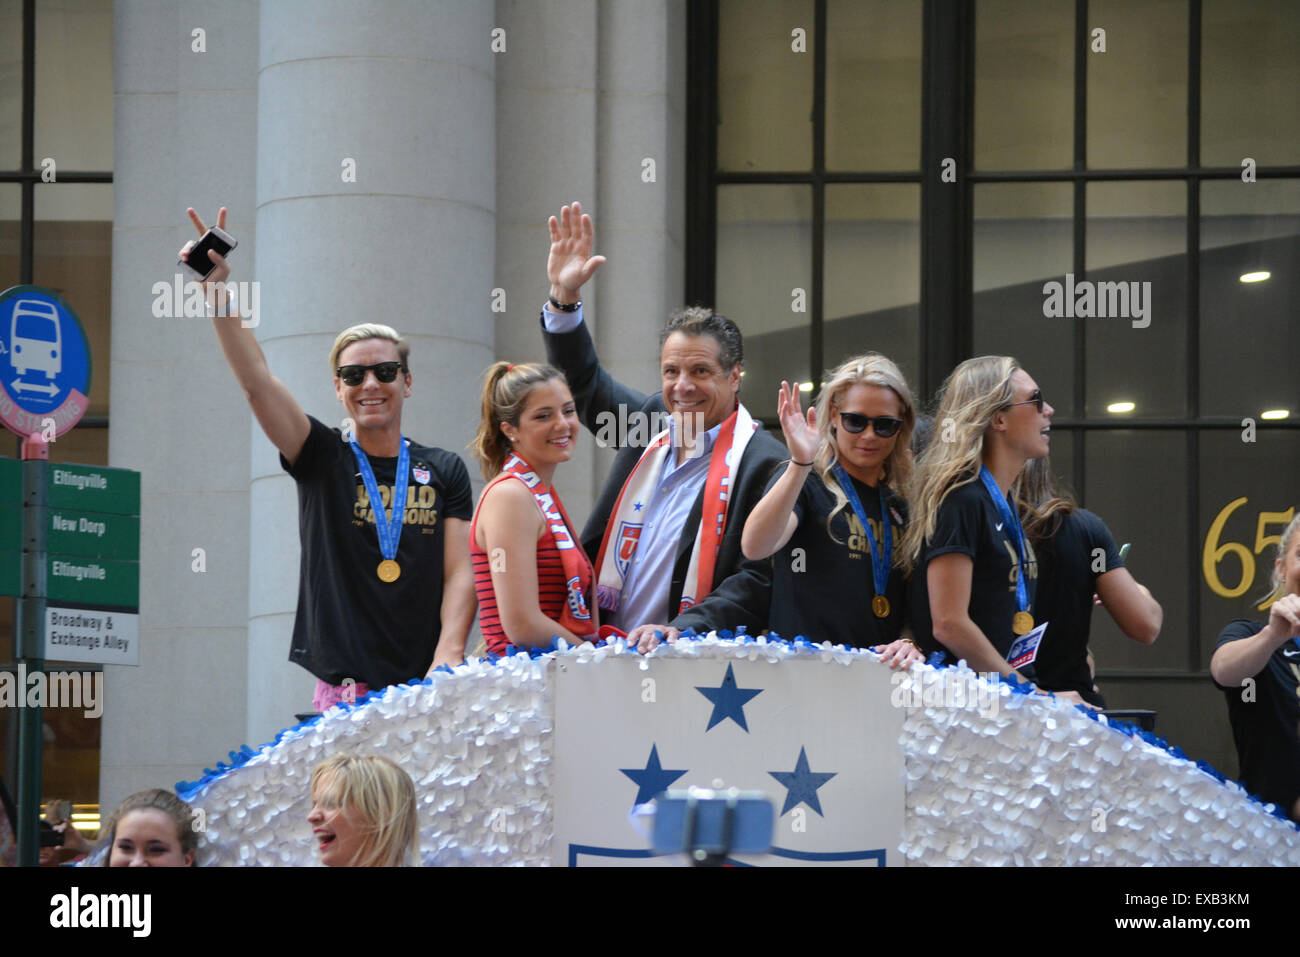 New York, USA. 10th July, 2015. Abby Wamback and New York Governor Andrew Cuomo on a float in the World Cup parade - Stock Image